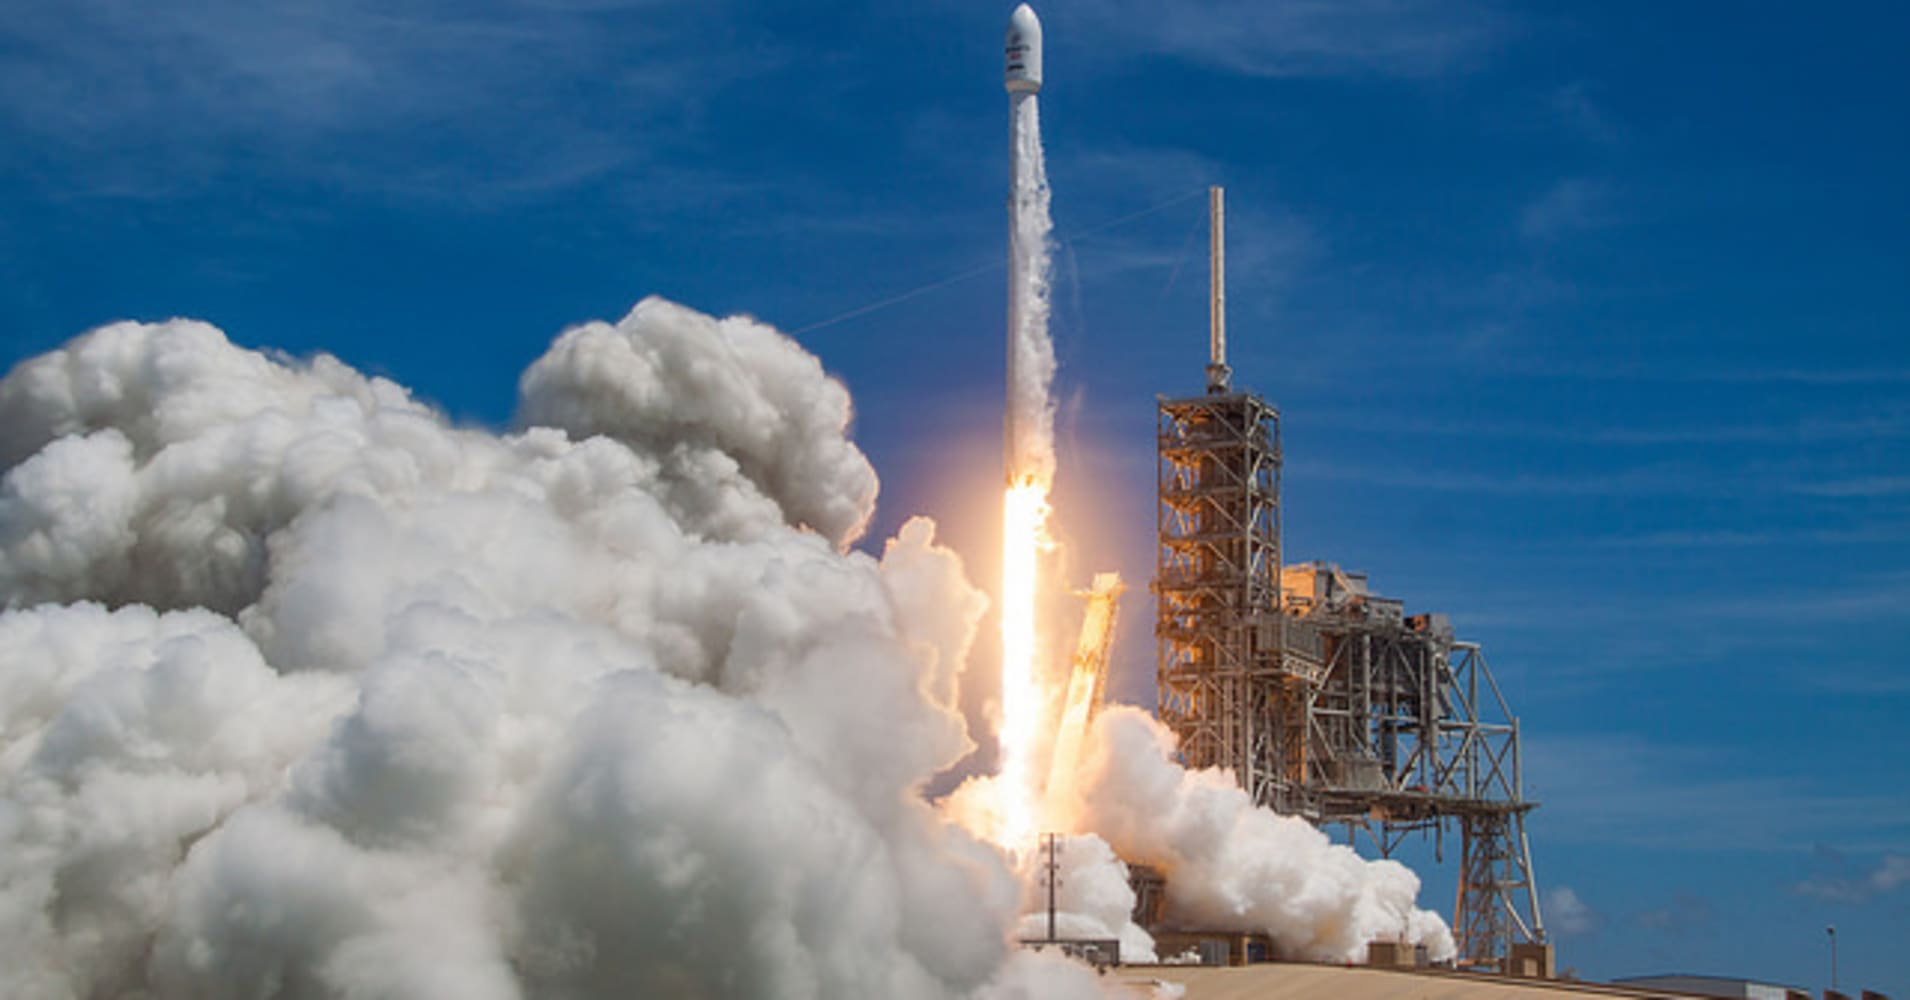 SpaceX's June 23 rocket launch